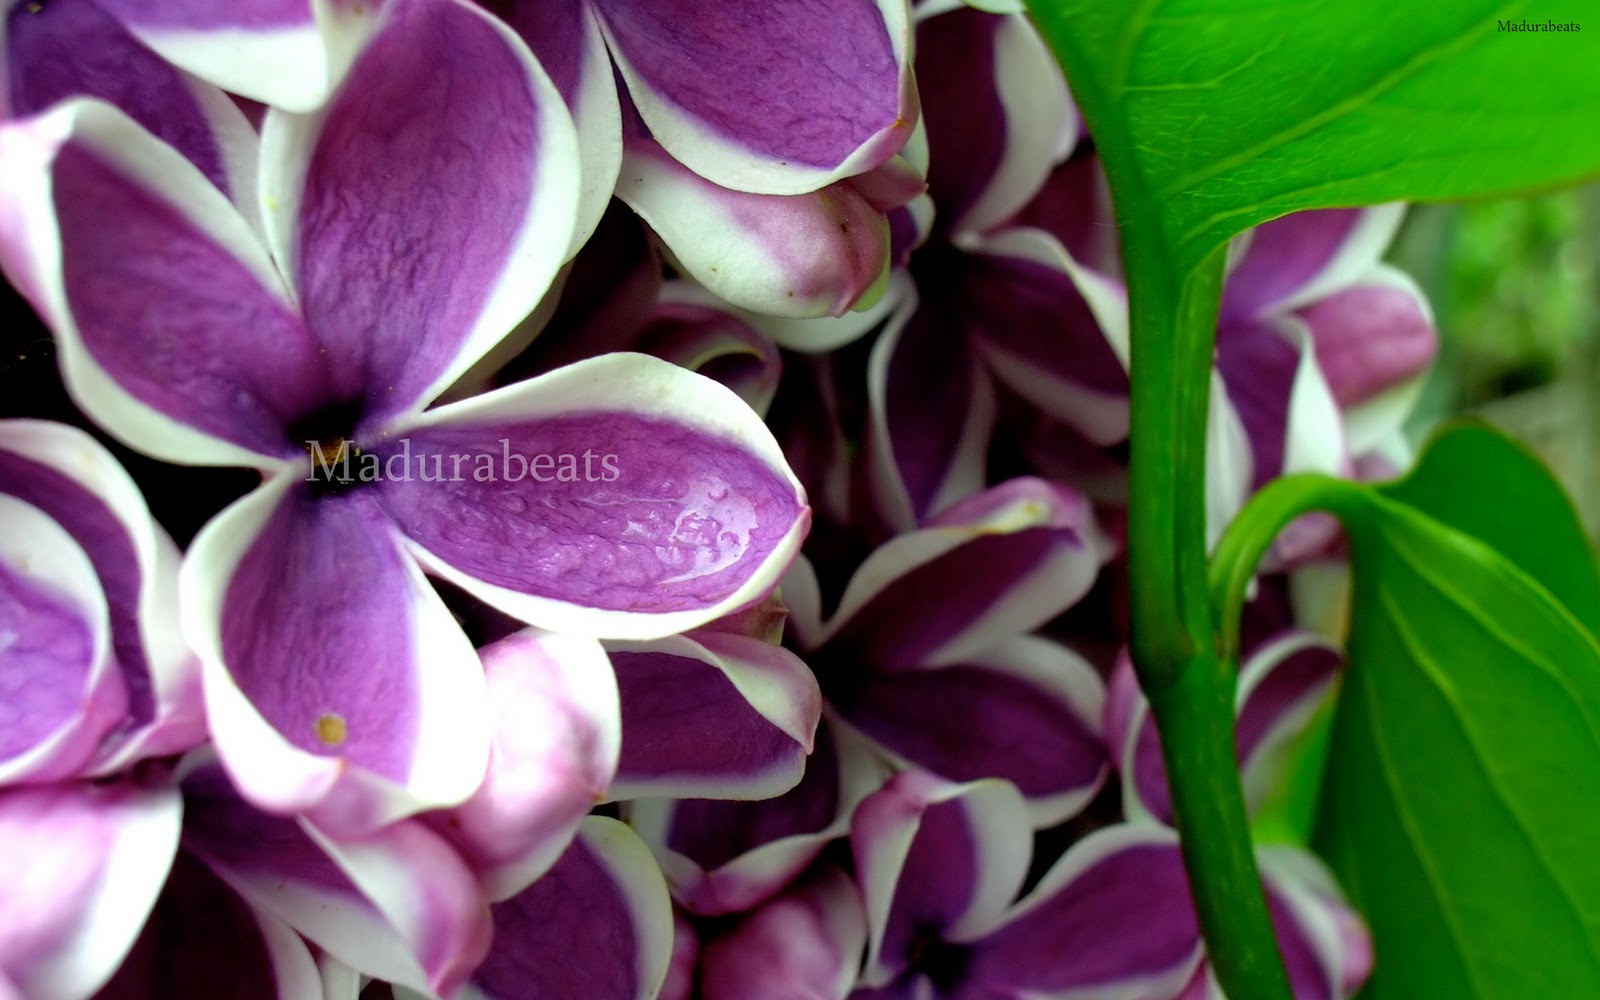 Flower images, Wide screen wallpapers,fresh flowers,Beautiful flowers,Lilacs_Syringa_purple_flower_Wide screen_wallpaper